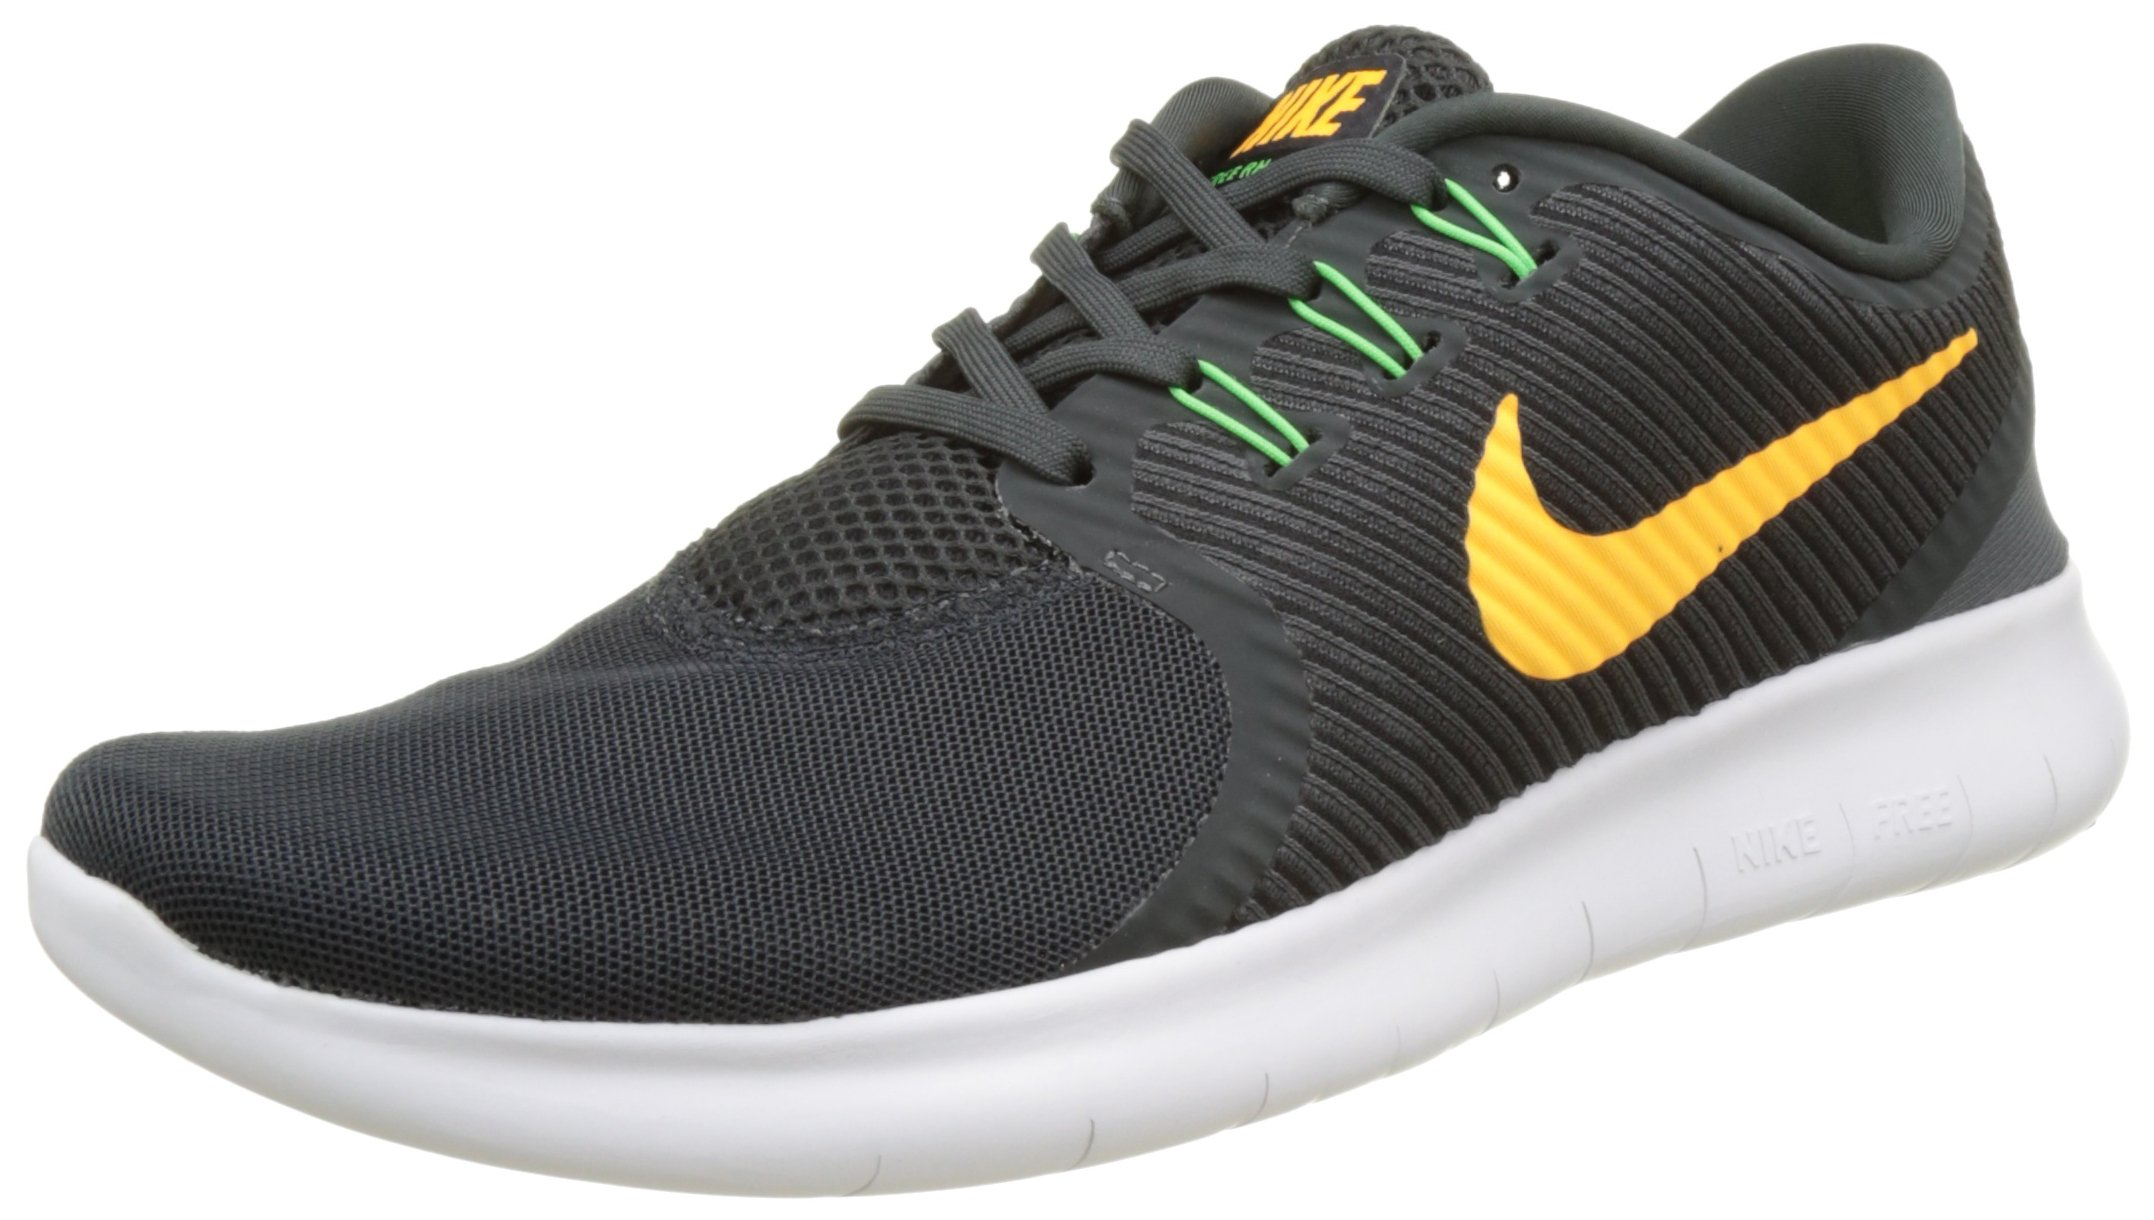 Nike Free RN Commuter Lightweight Sneakers Durability Comfortable Men's Running Shoes (13 M US, Anthracite Laser Orange 008) by NIKE